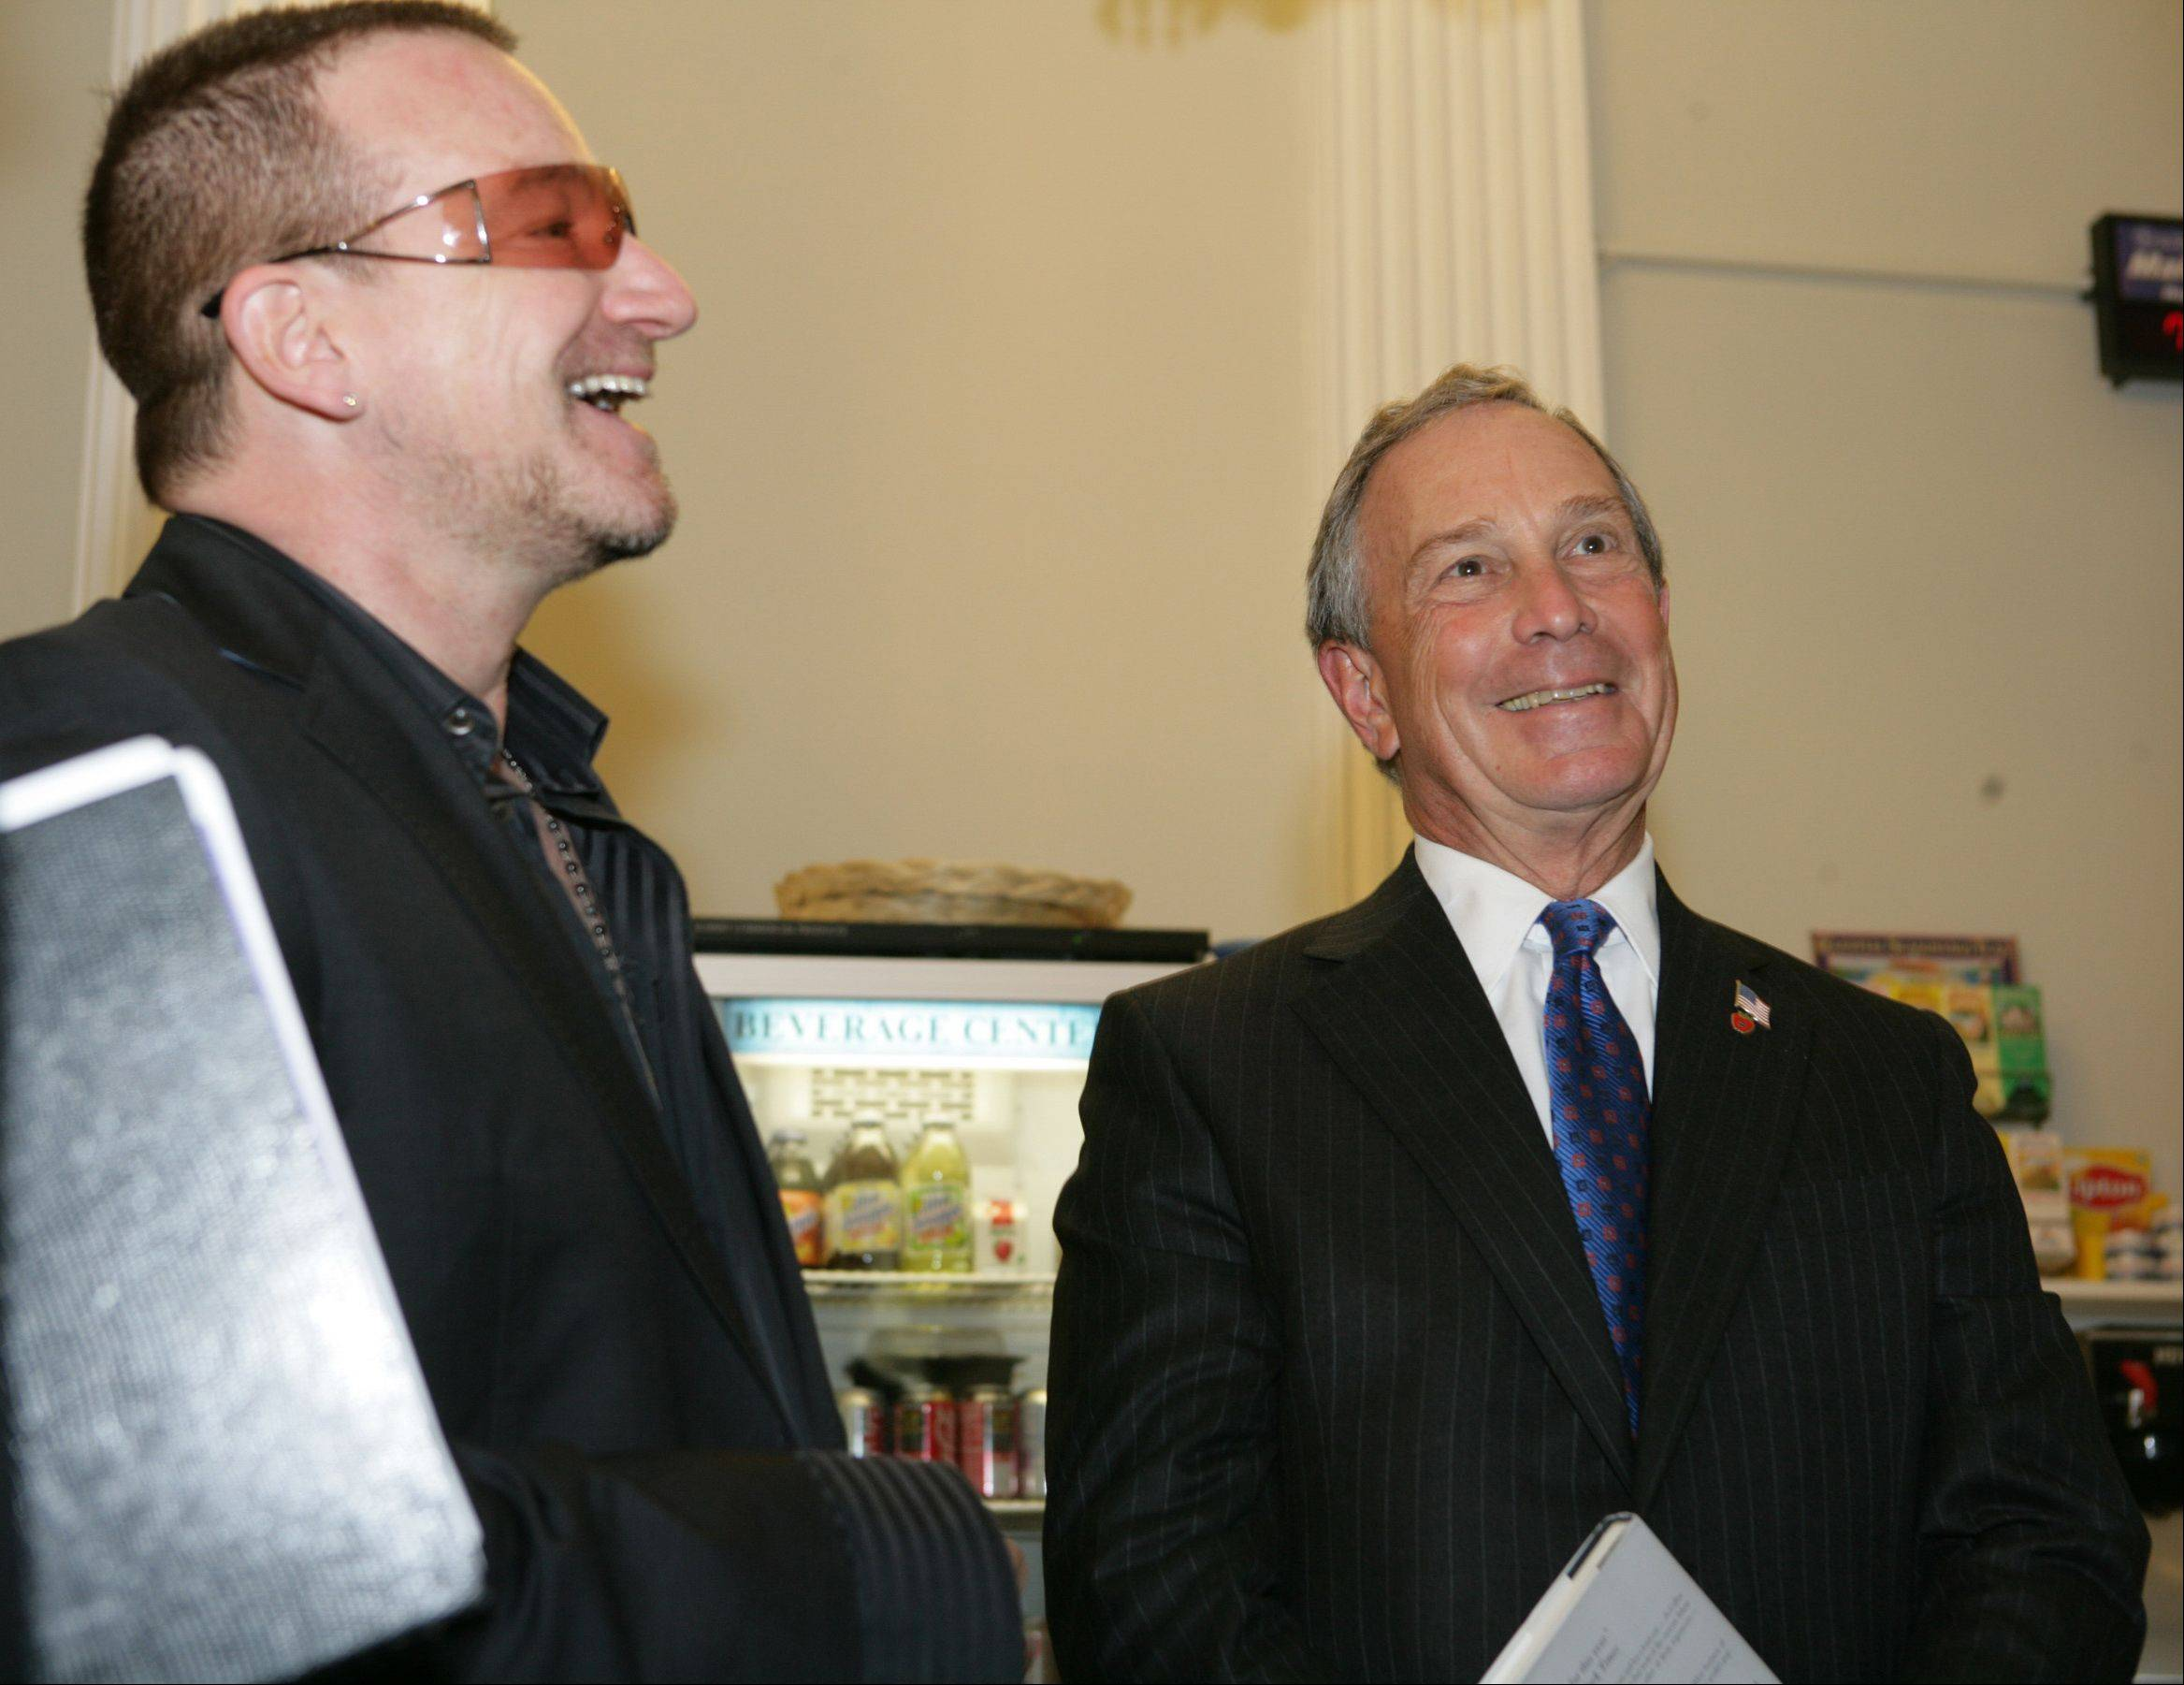 In this photo released by the New York City Mayor's Office, Irish rocker and social activist, Bono, left, stands next to New York City Mayor Michael Bloomberg, Thursday, Nov. 1, 2007 at City Hall in New York. Bono was invited to meet with the mayor, who wanted to know what the singer was working on with his charity projects.